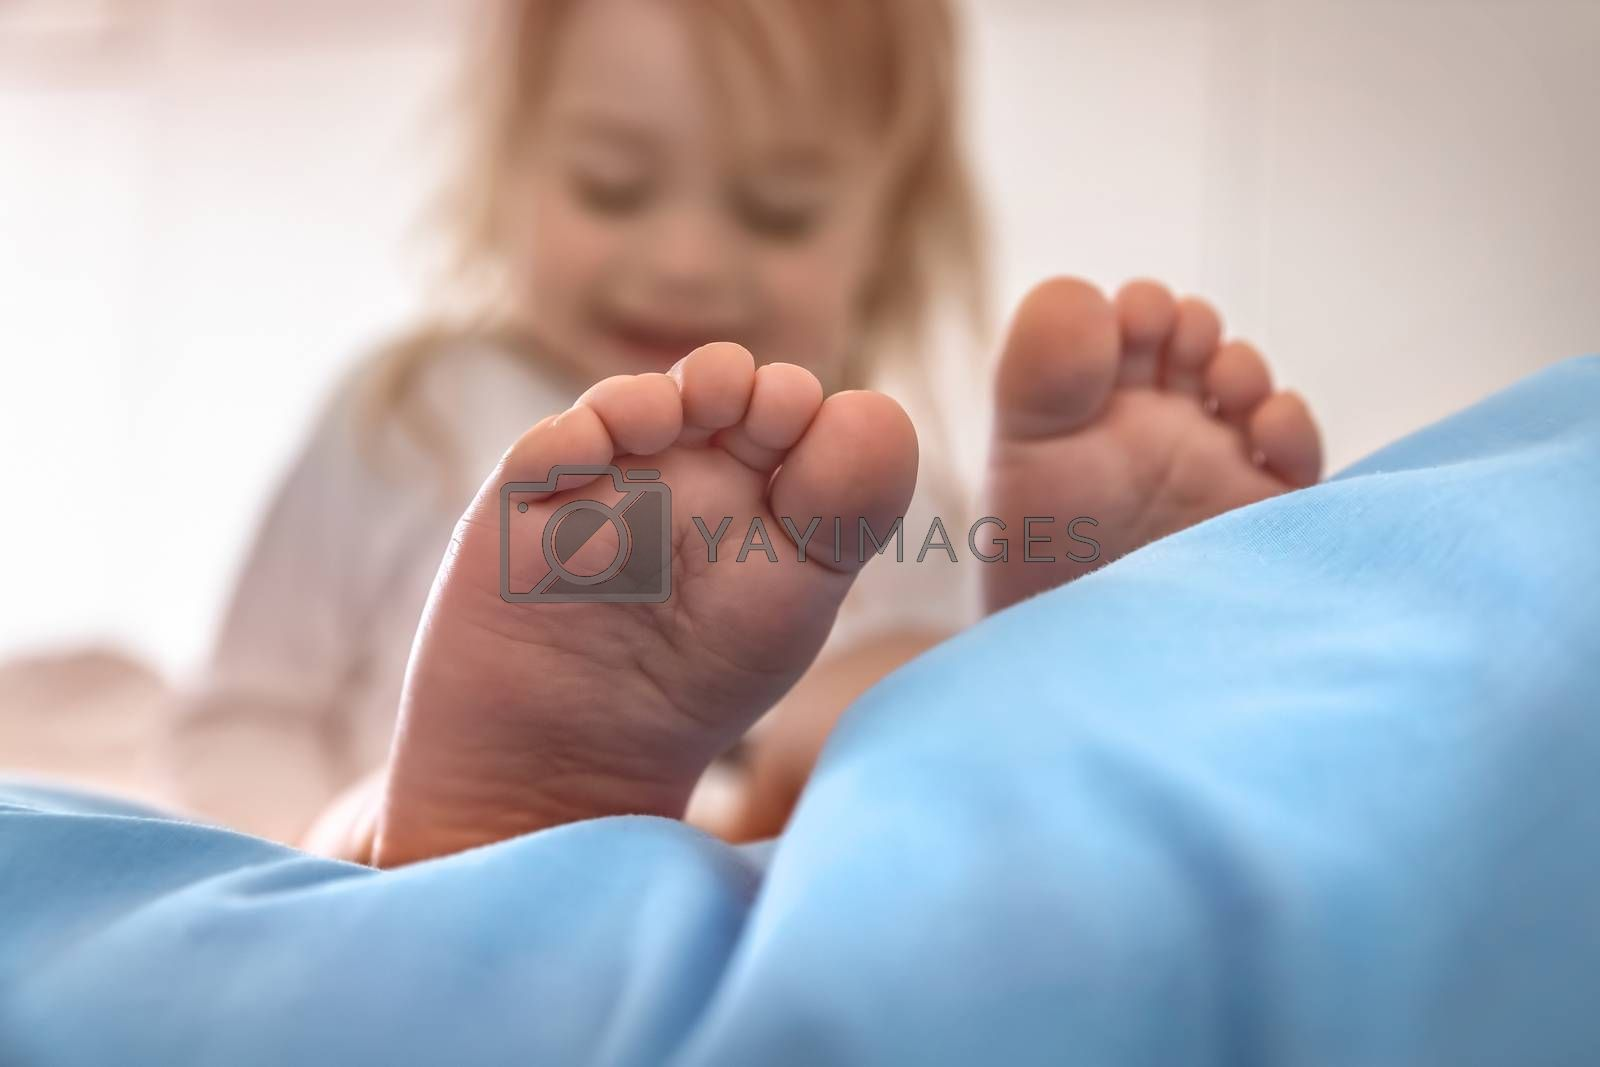 Selective Focus on a Cute Little Baby Boy's Bare Feet. Kid Enjoying Morning Time. Happy Healthy Child at Home